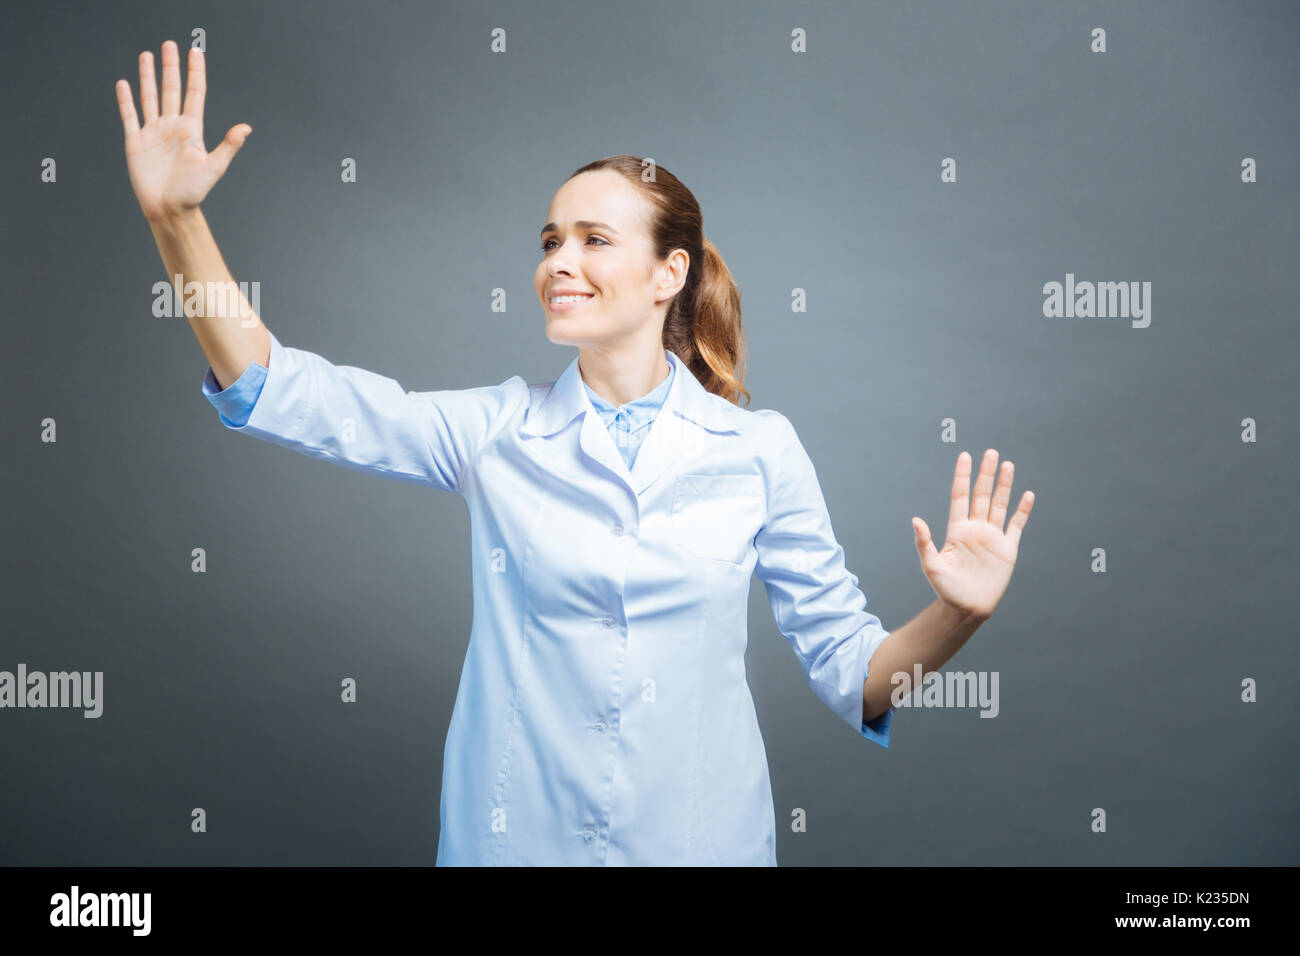 Cheerful medical worker touching invisible touchscreen - Stock Image